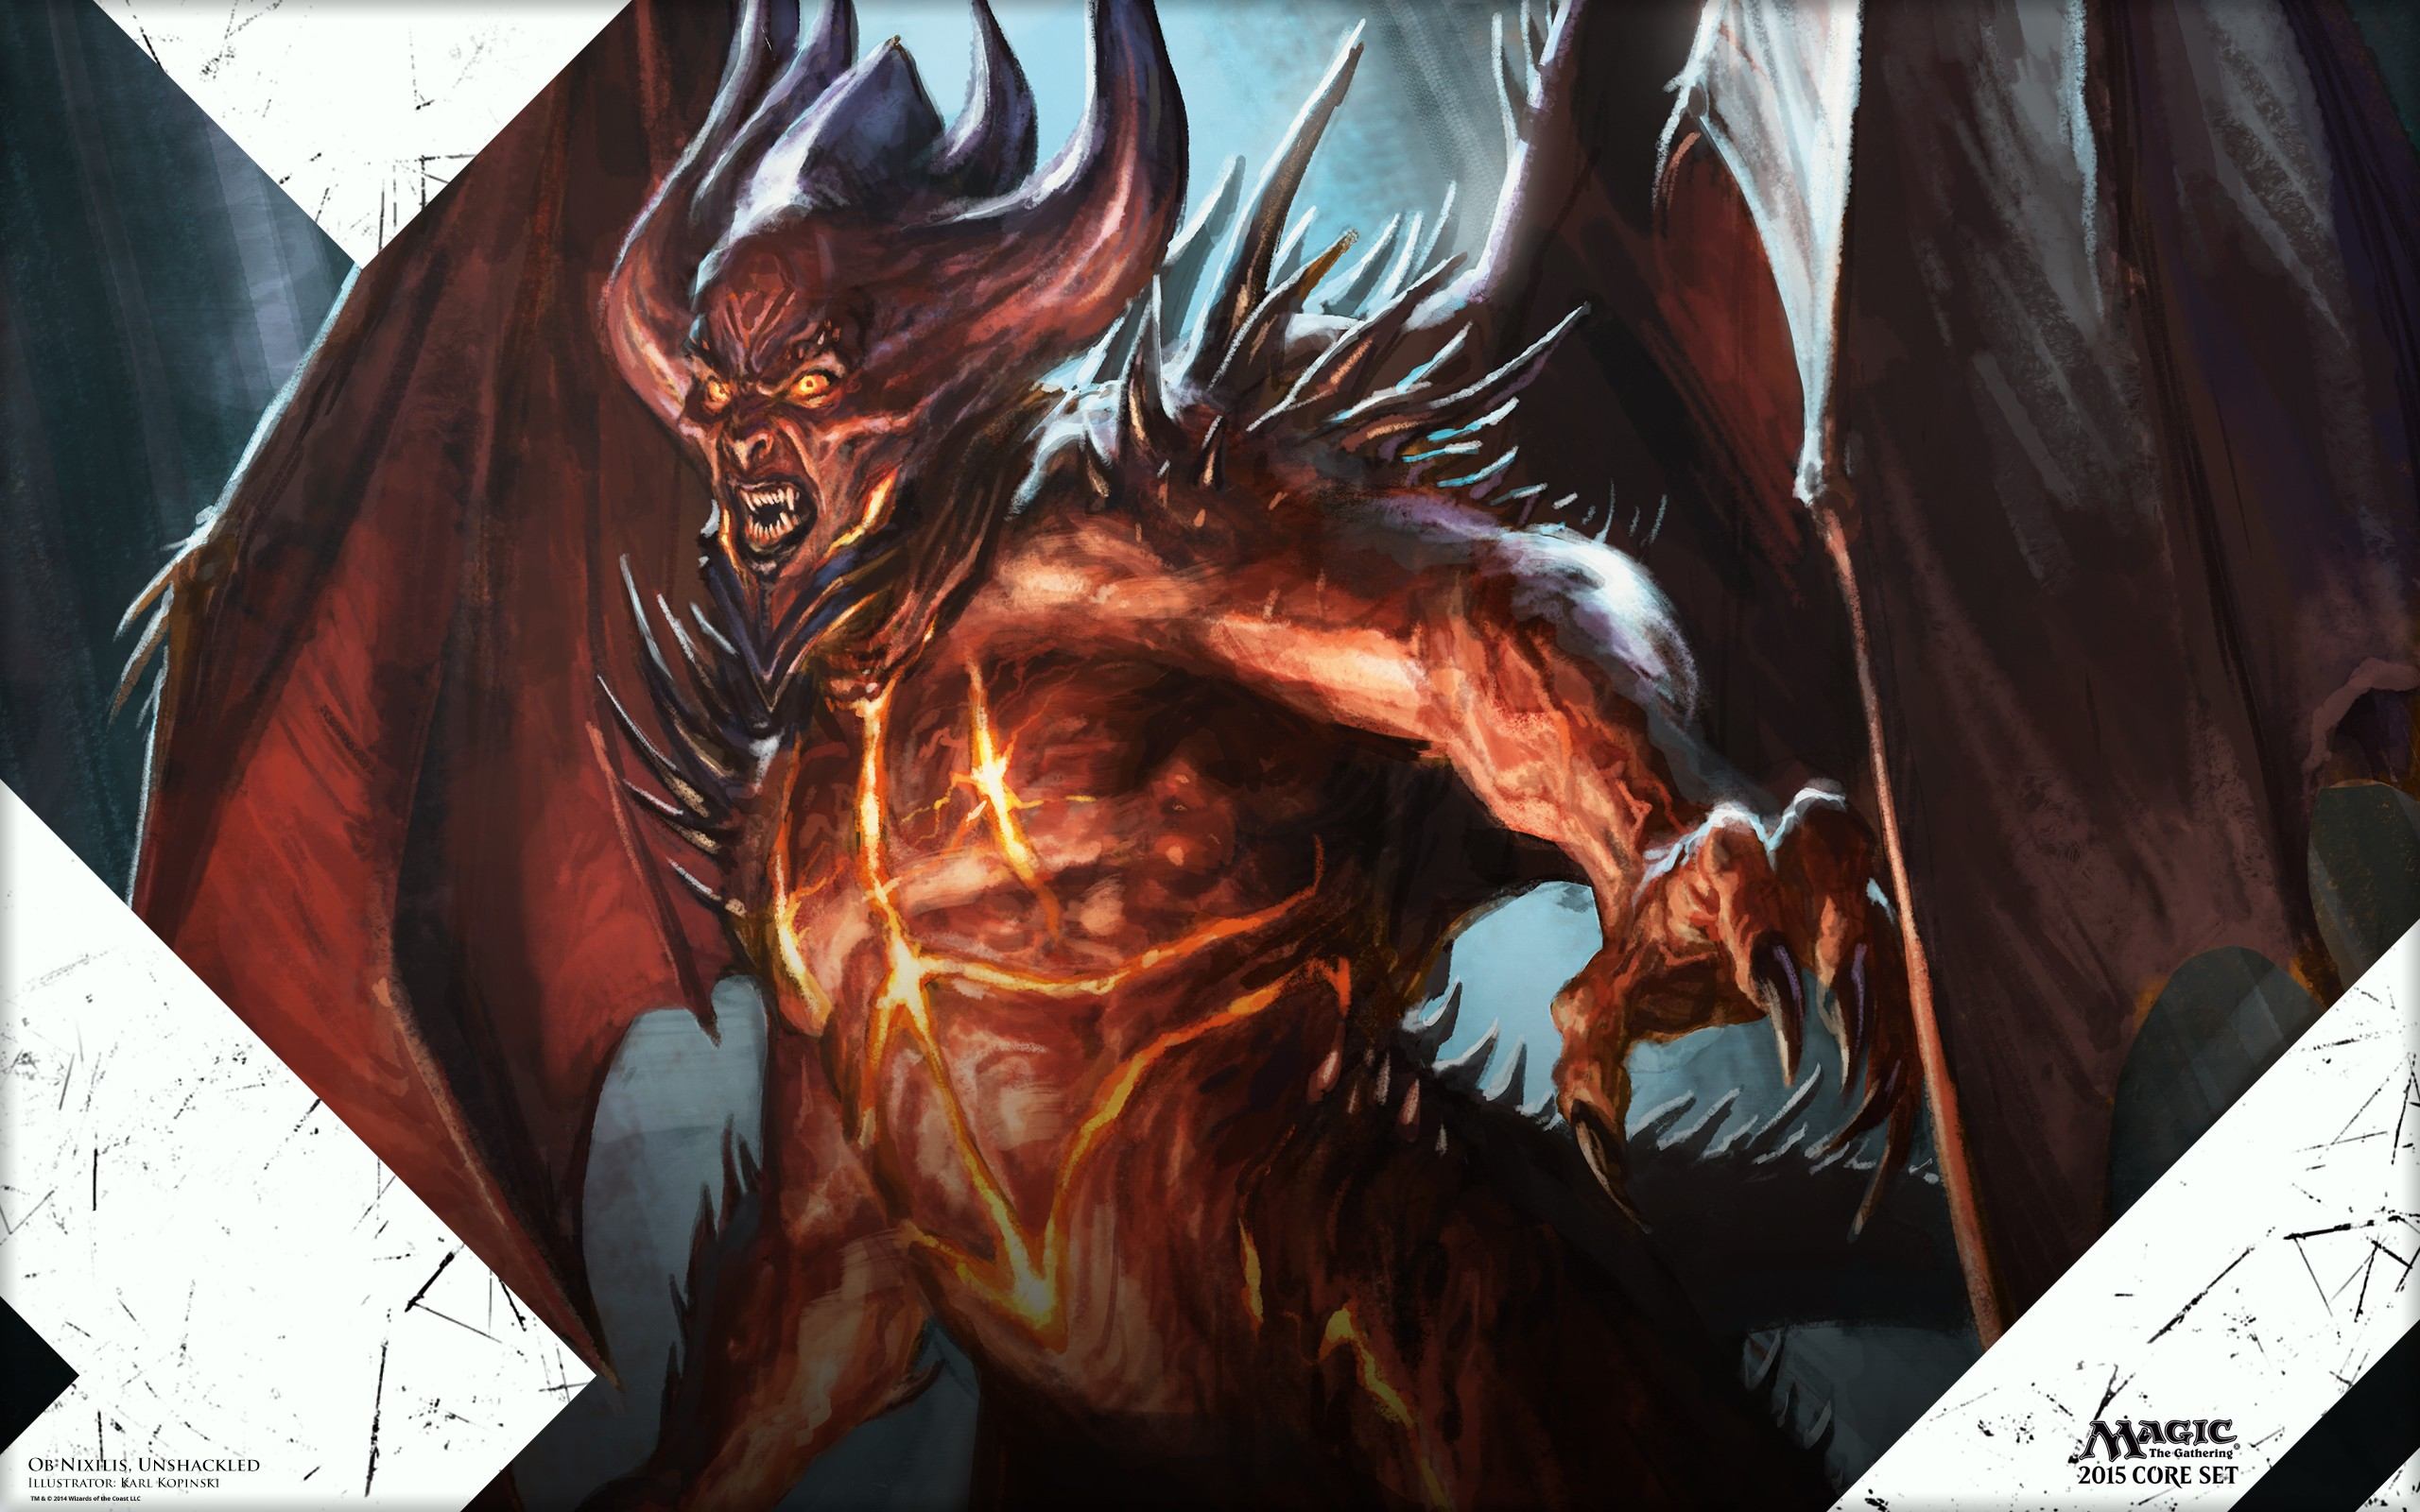 Libros De Magic The Gathering Fondos De Pantalla Magia Magic The Gathering Demonio